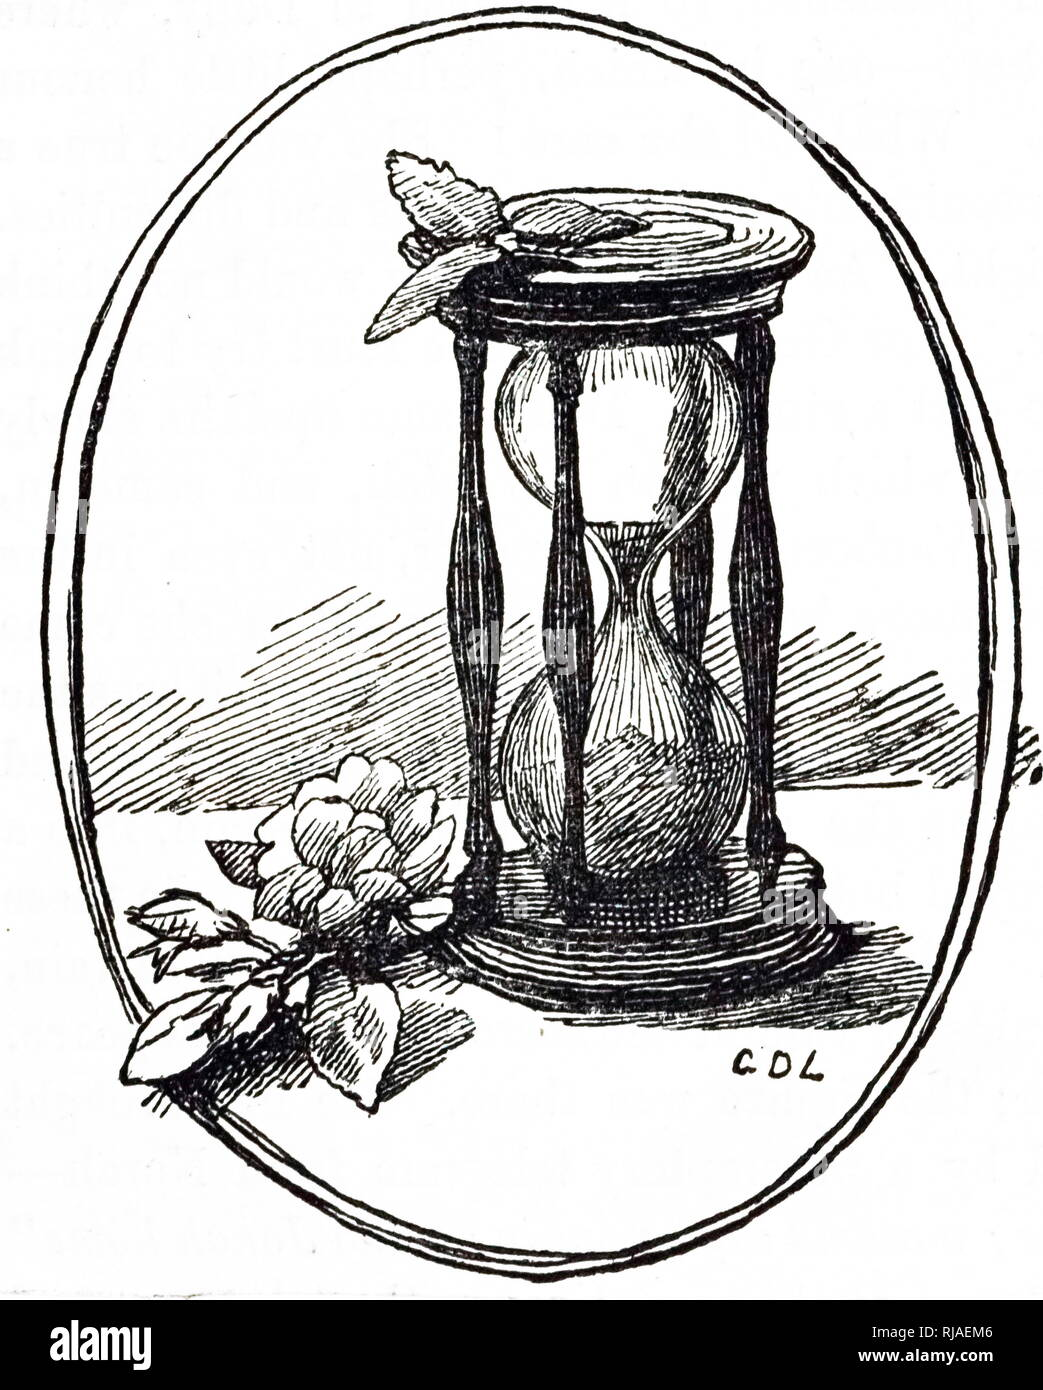 An engraving depicting an hourglass. Dated 19th century - Stock Image